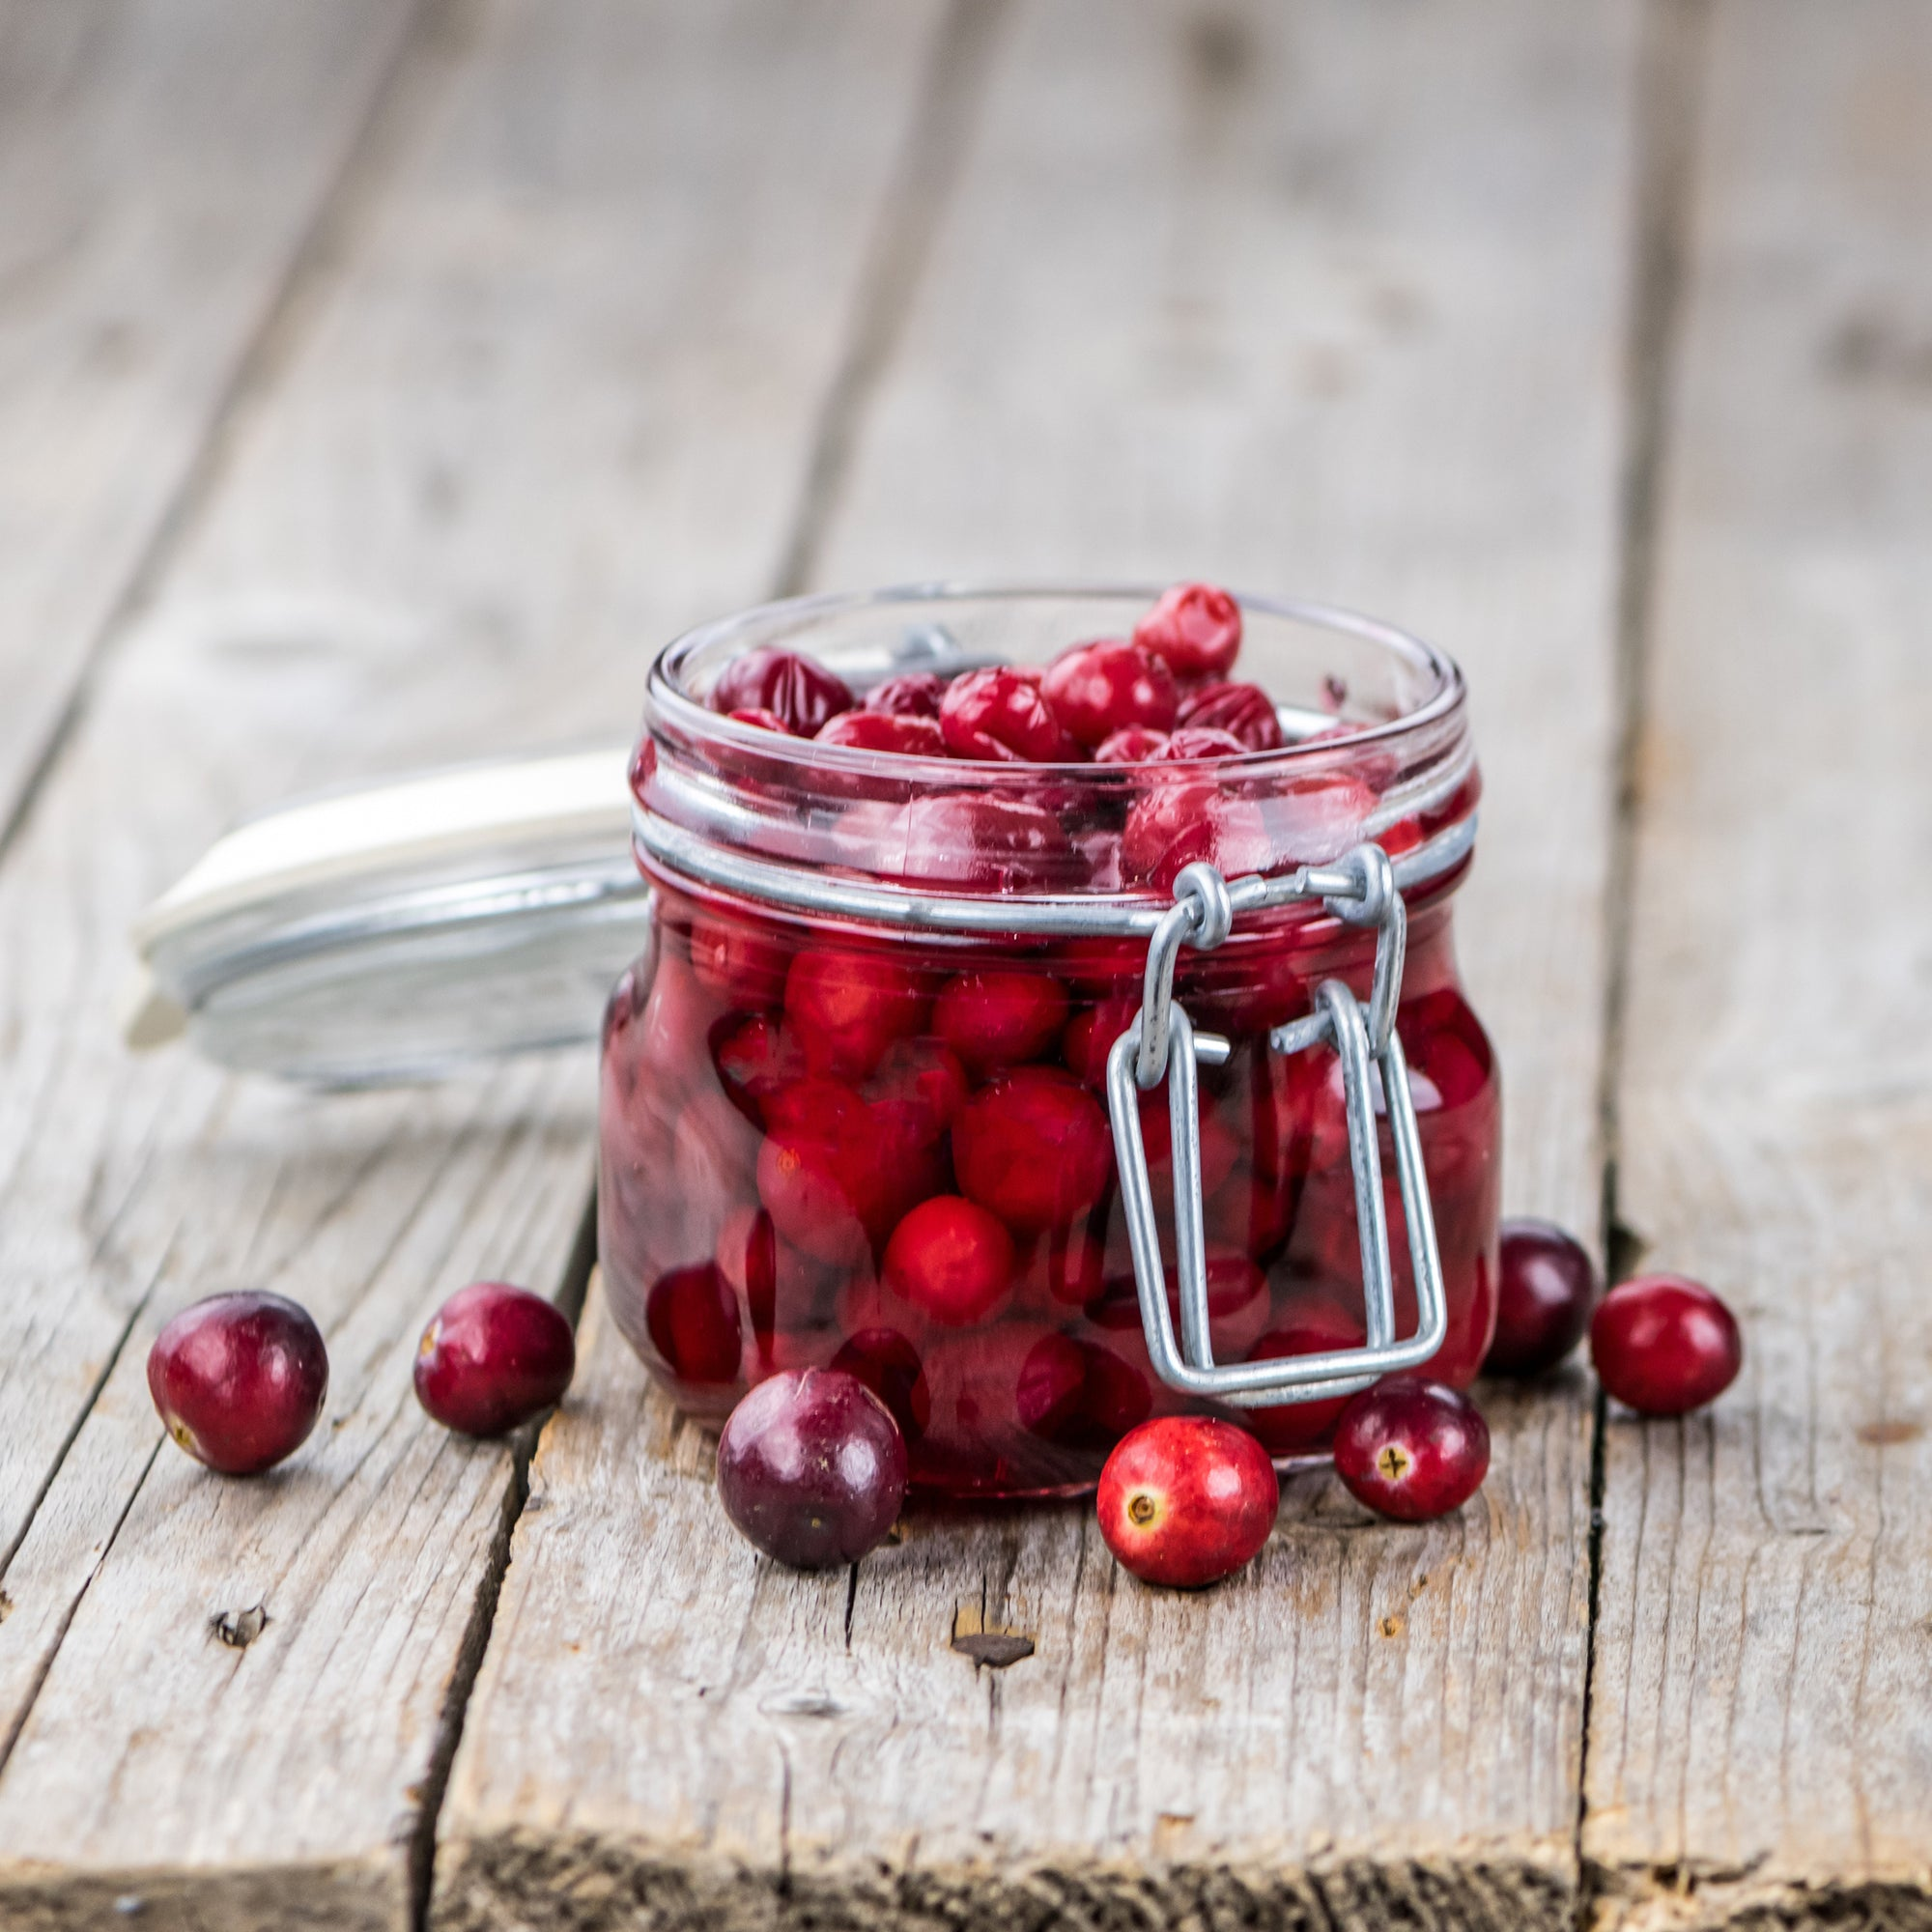 Does cranberry juice work to prevent UTIs?